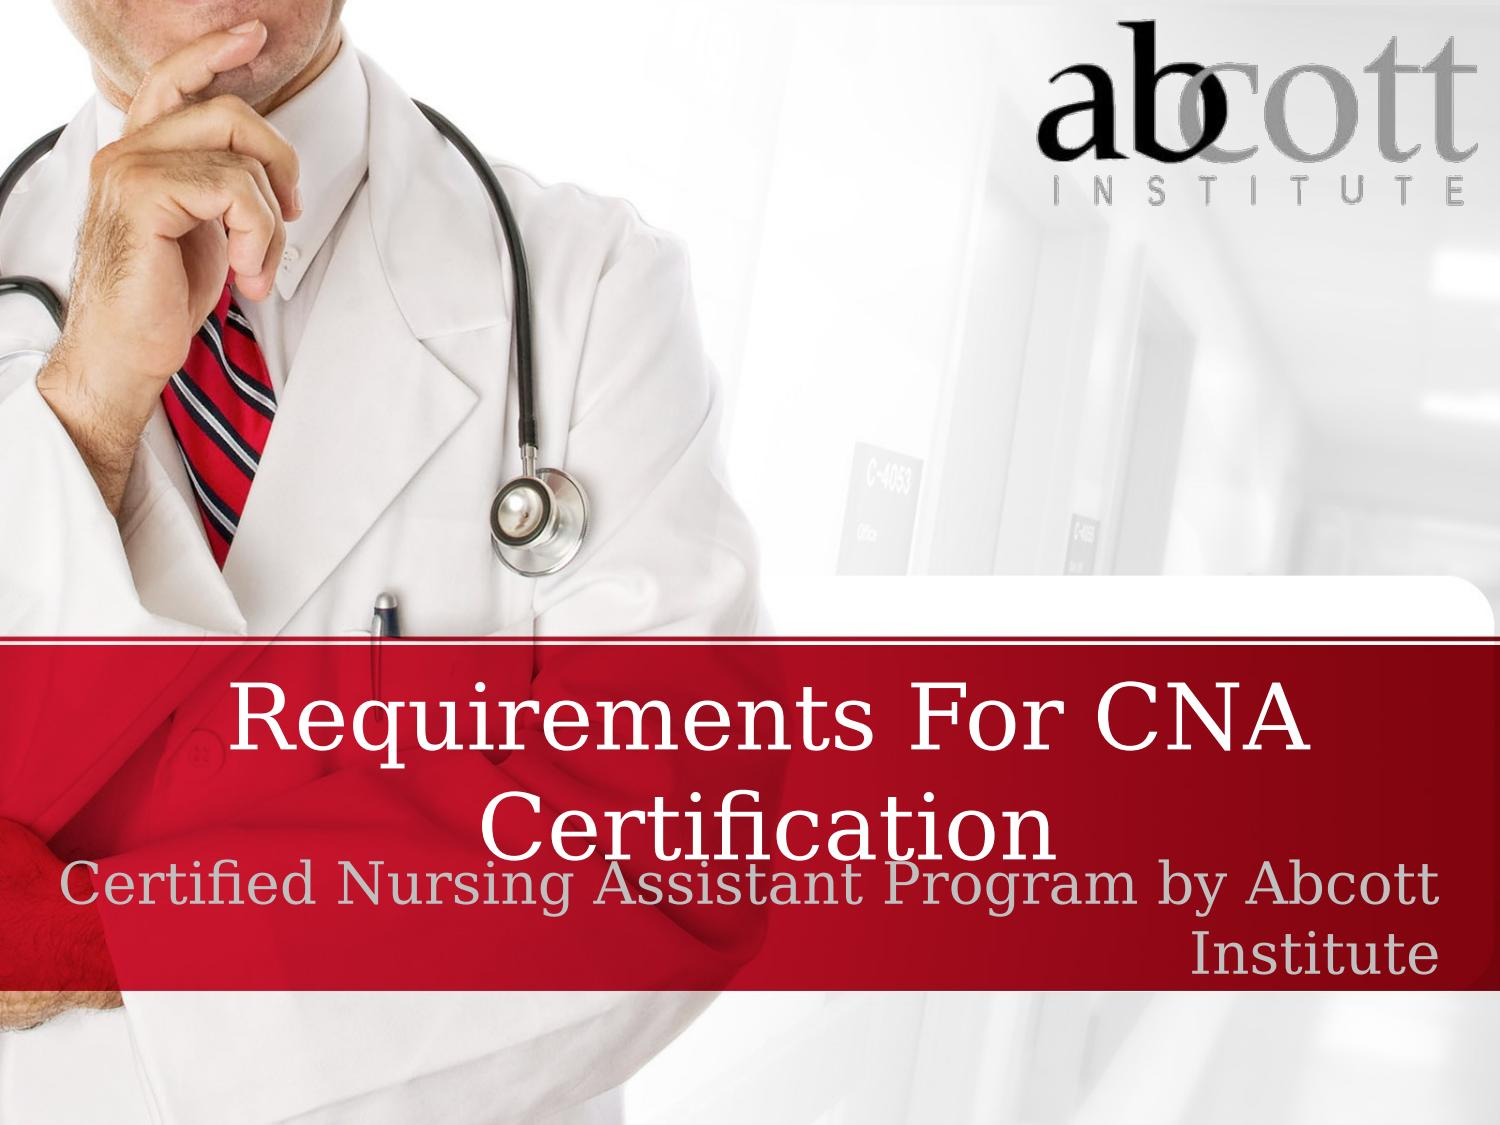 Cna certification requirements abcott by william hendry issuu 1betcityfo Choice Image